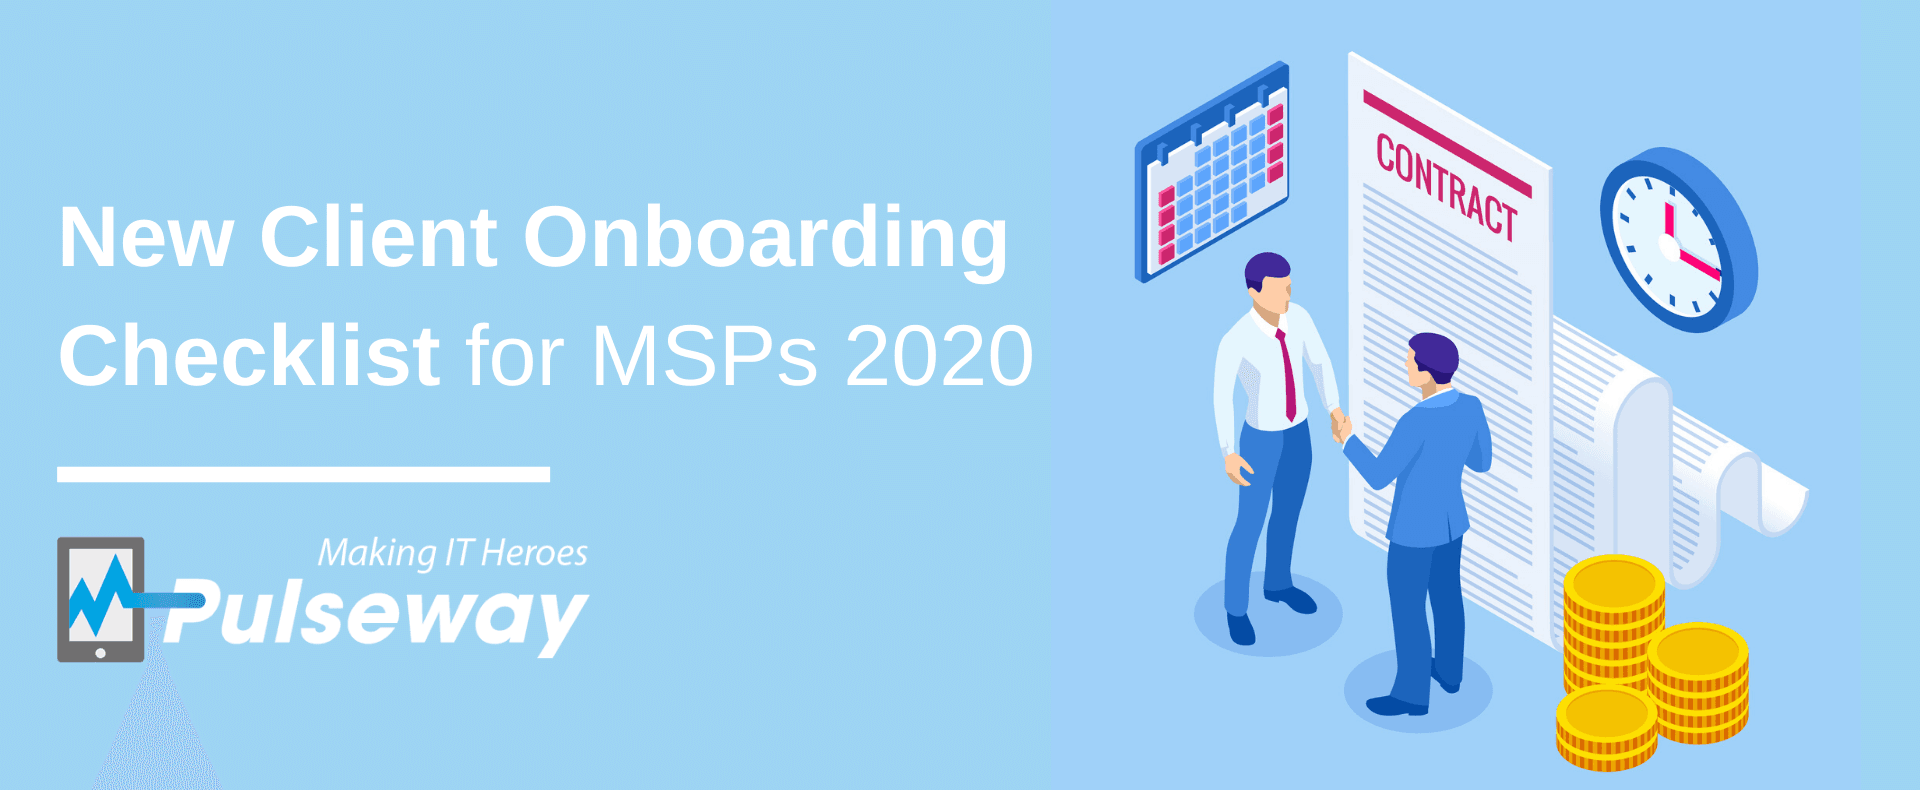 New Client Onboarding Guide for MSPs in 2020